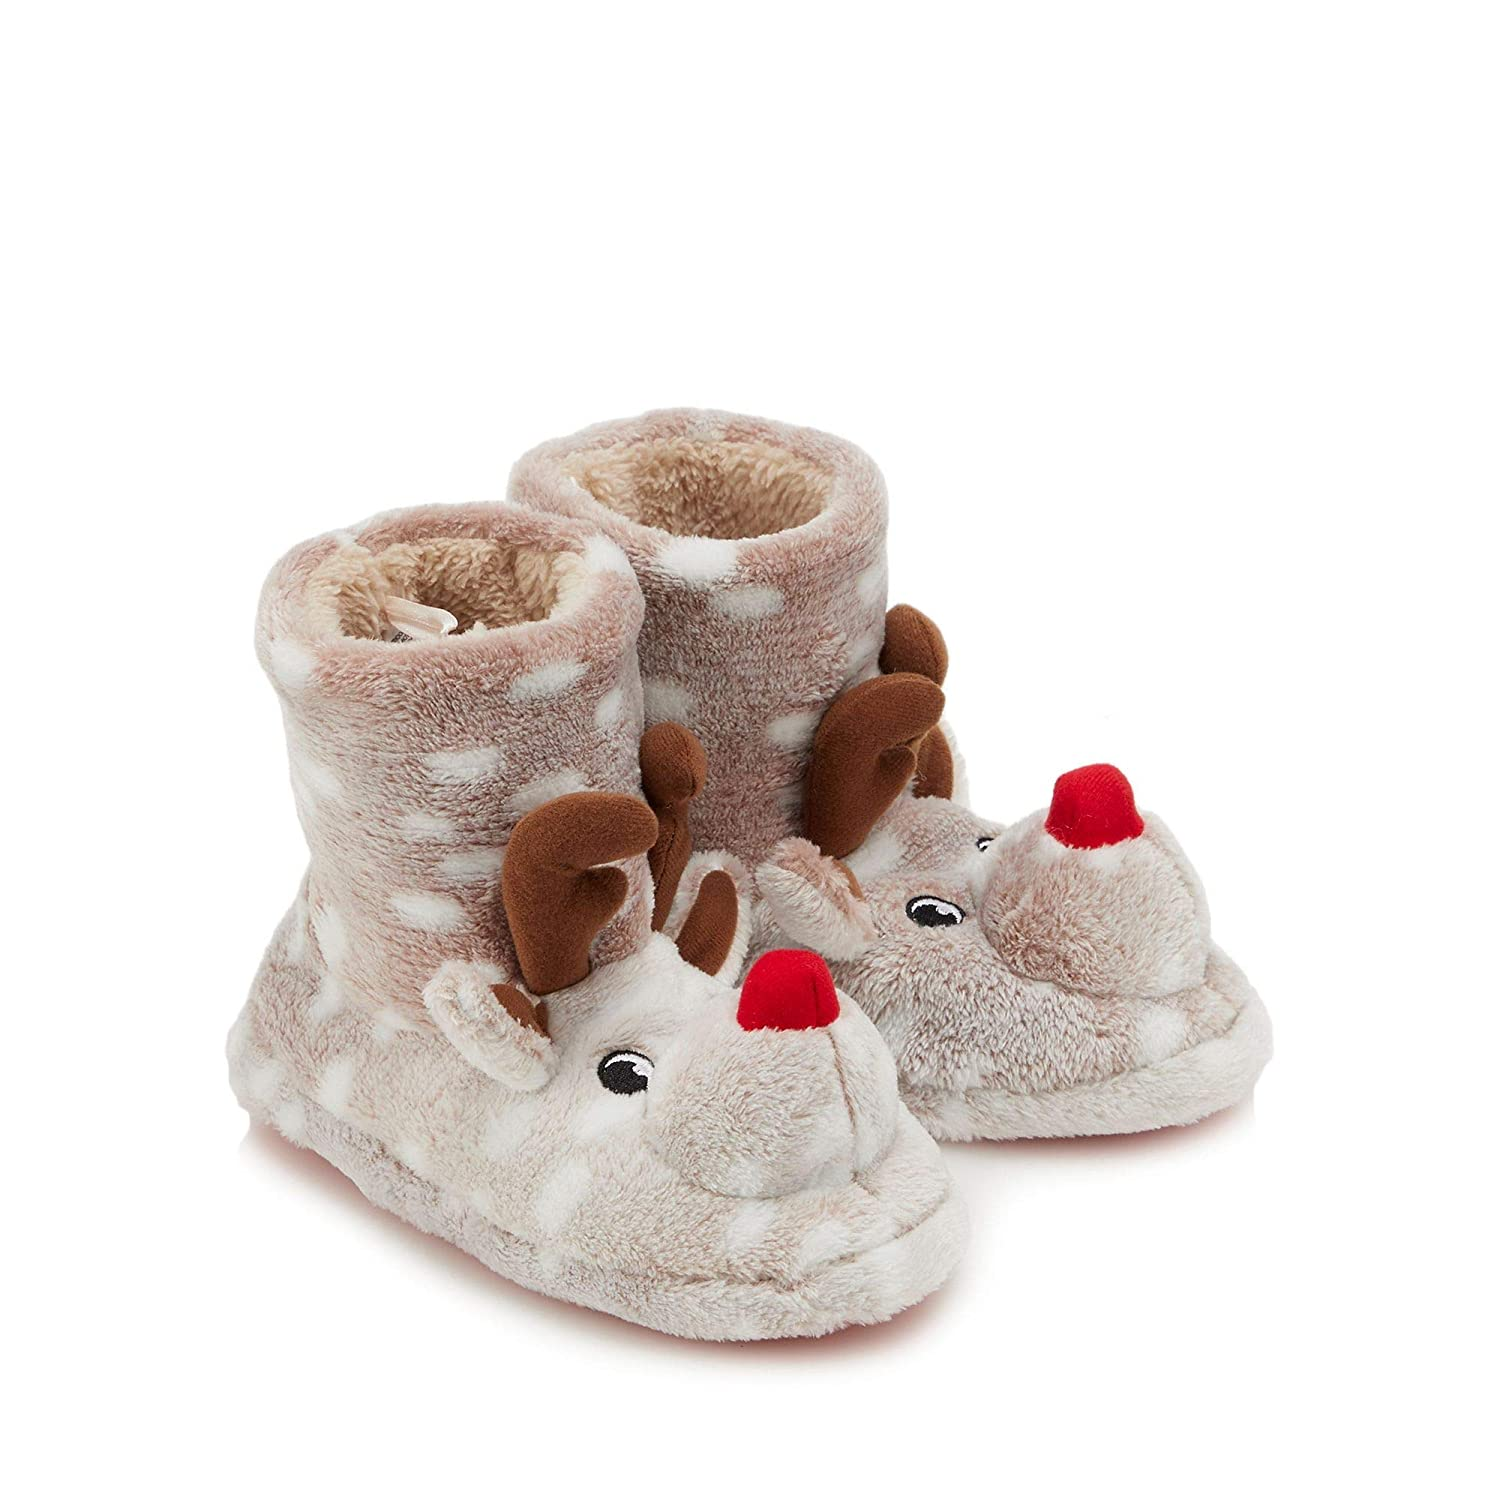 de19d283e9532 Bluezoo Kids Boys  Brown Fleece  Rudolph  Bootie Slippers  bluezoo   Amazon.co.uk  Clothing